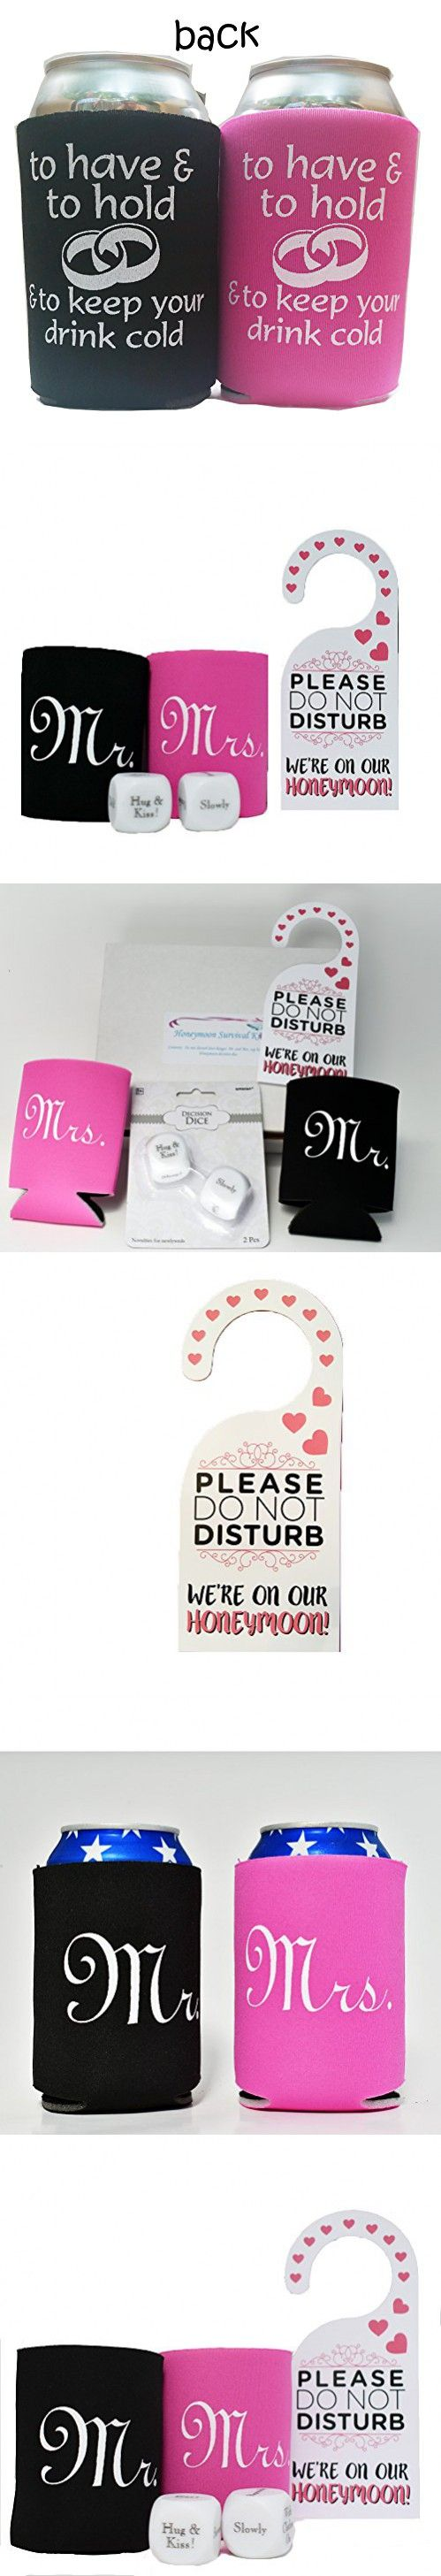 Honeymoon Survival Kit - Bride and Groom Cup Holders, Honeymoon Decision Dice and Do Not Disturb Door Hanger (Bundle of 3 Items)